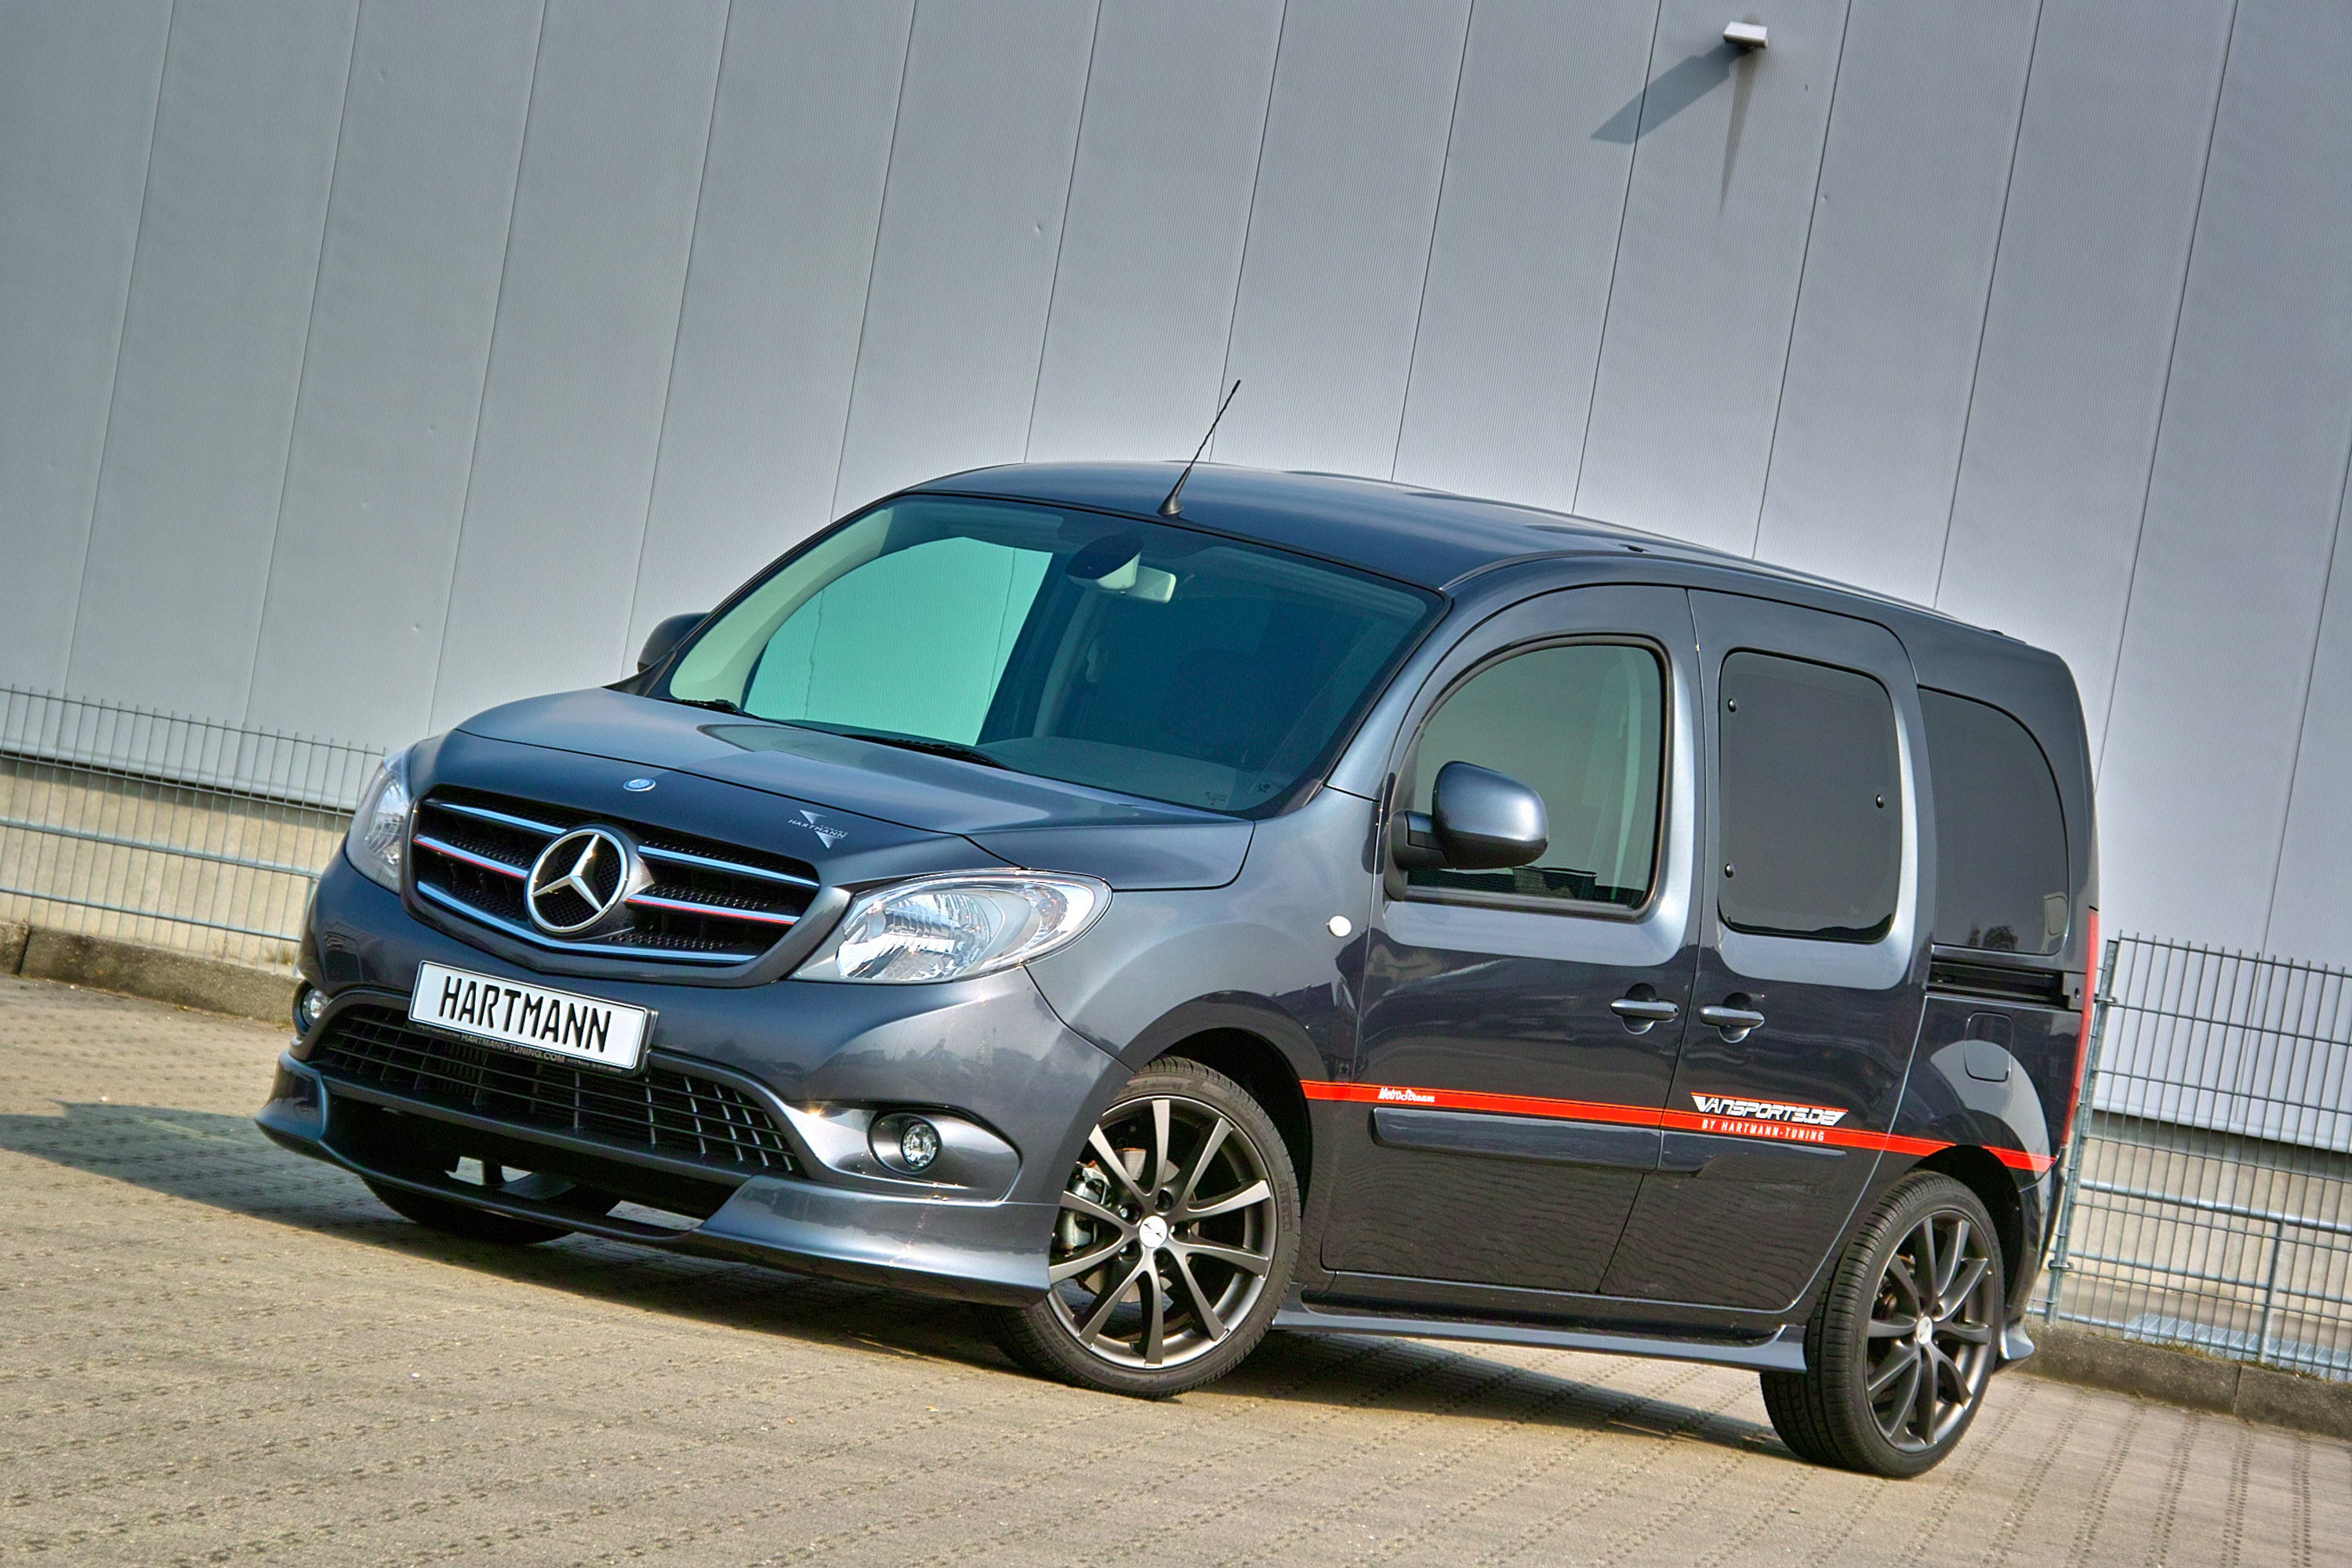 hartmann mercedes benz citan. Black Bedroom Furniture Sets. Home Design Ideas